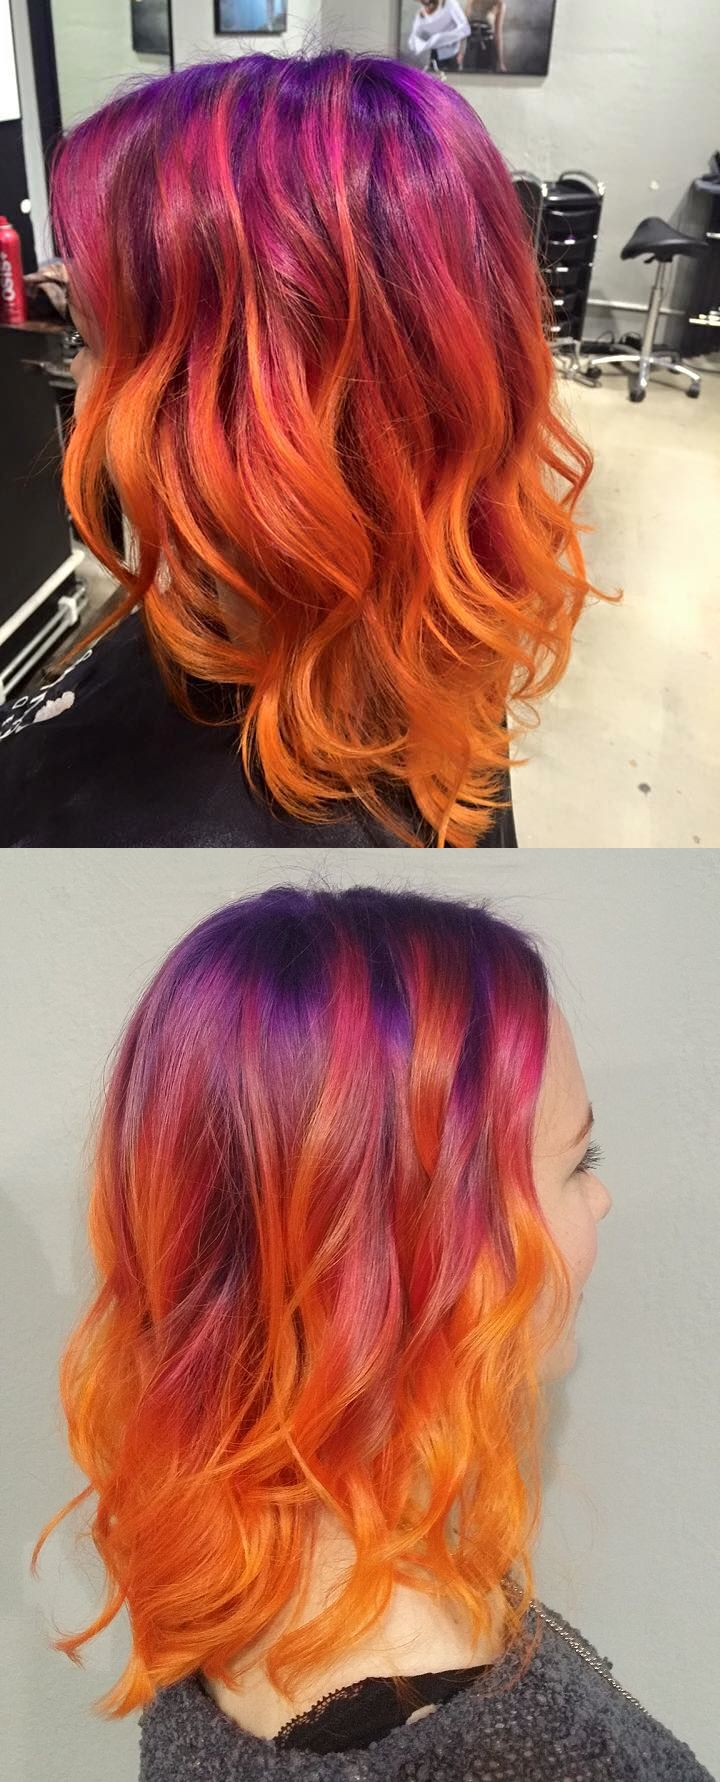 Sunset hair: Violet roots, hot pink and orange. Colour and cut by Vladimir Eroshenko at Cybtekk hair salon.